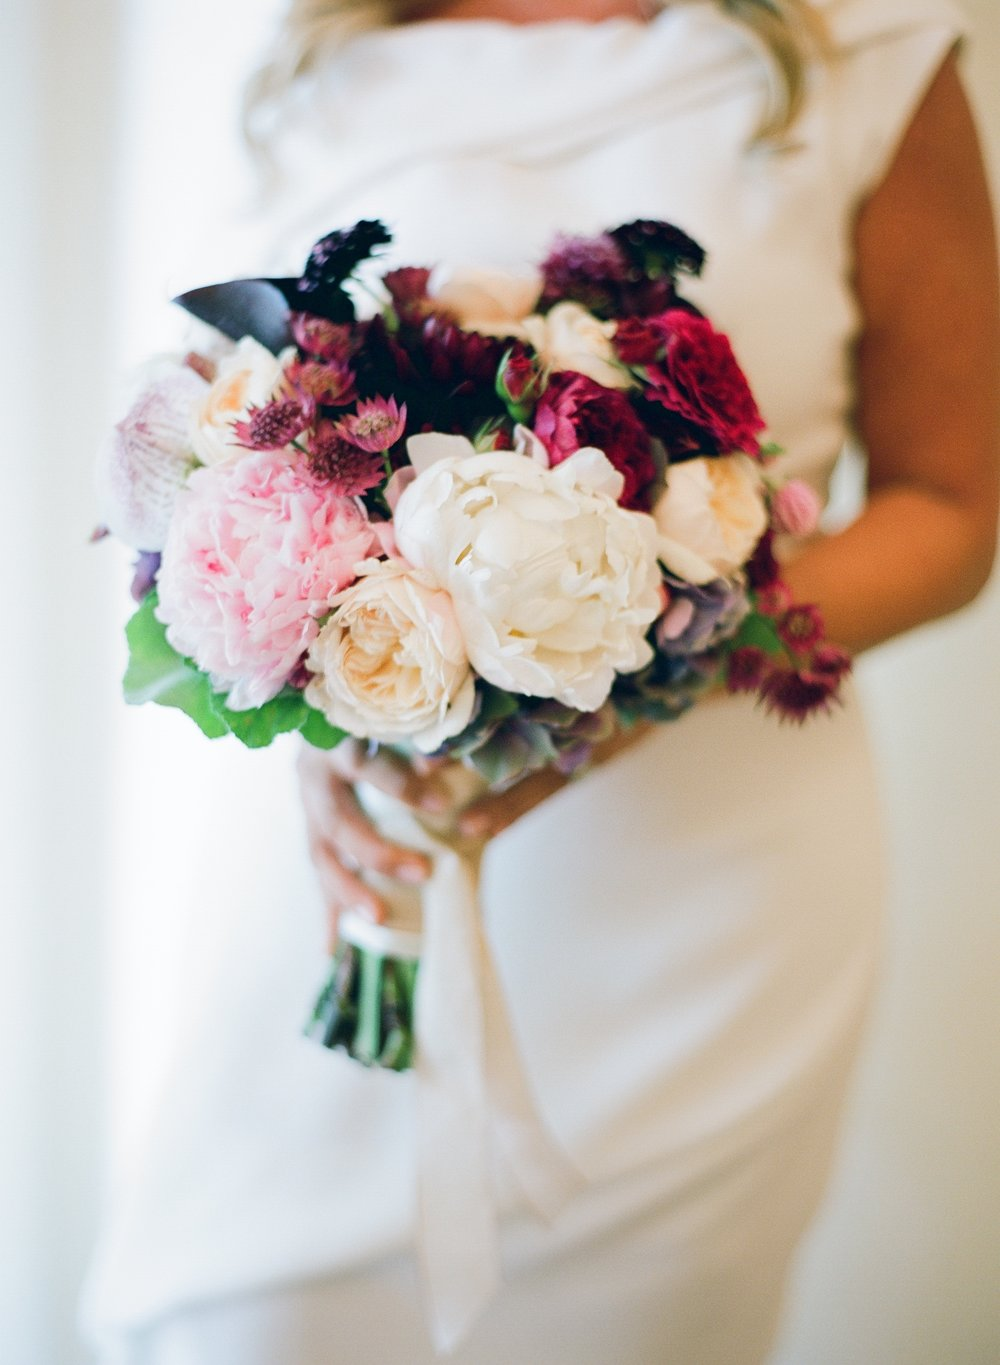 santabarbarawedding.com | Four Seasons Biltmore Wedding in Santa Barbara | Magnolia Event Design | Jose Villa | Bridal Bouquet